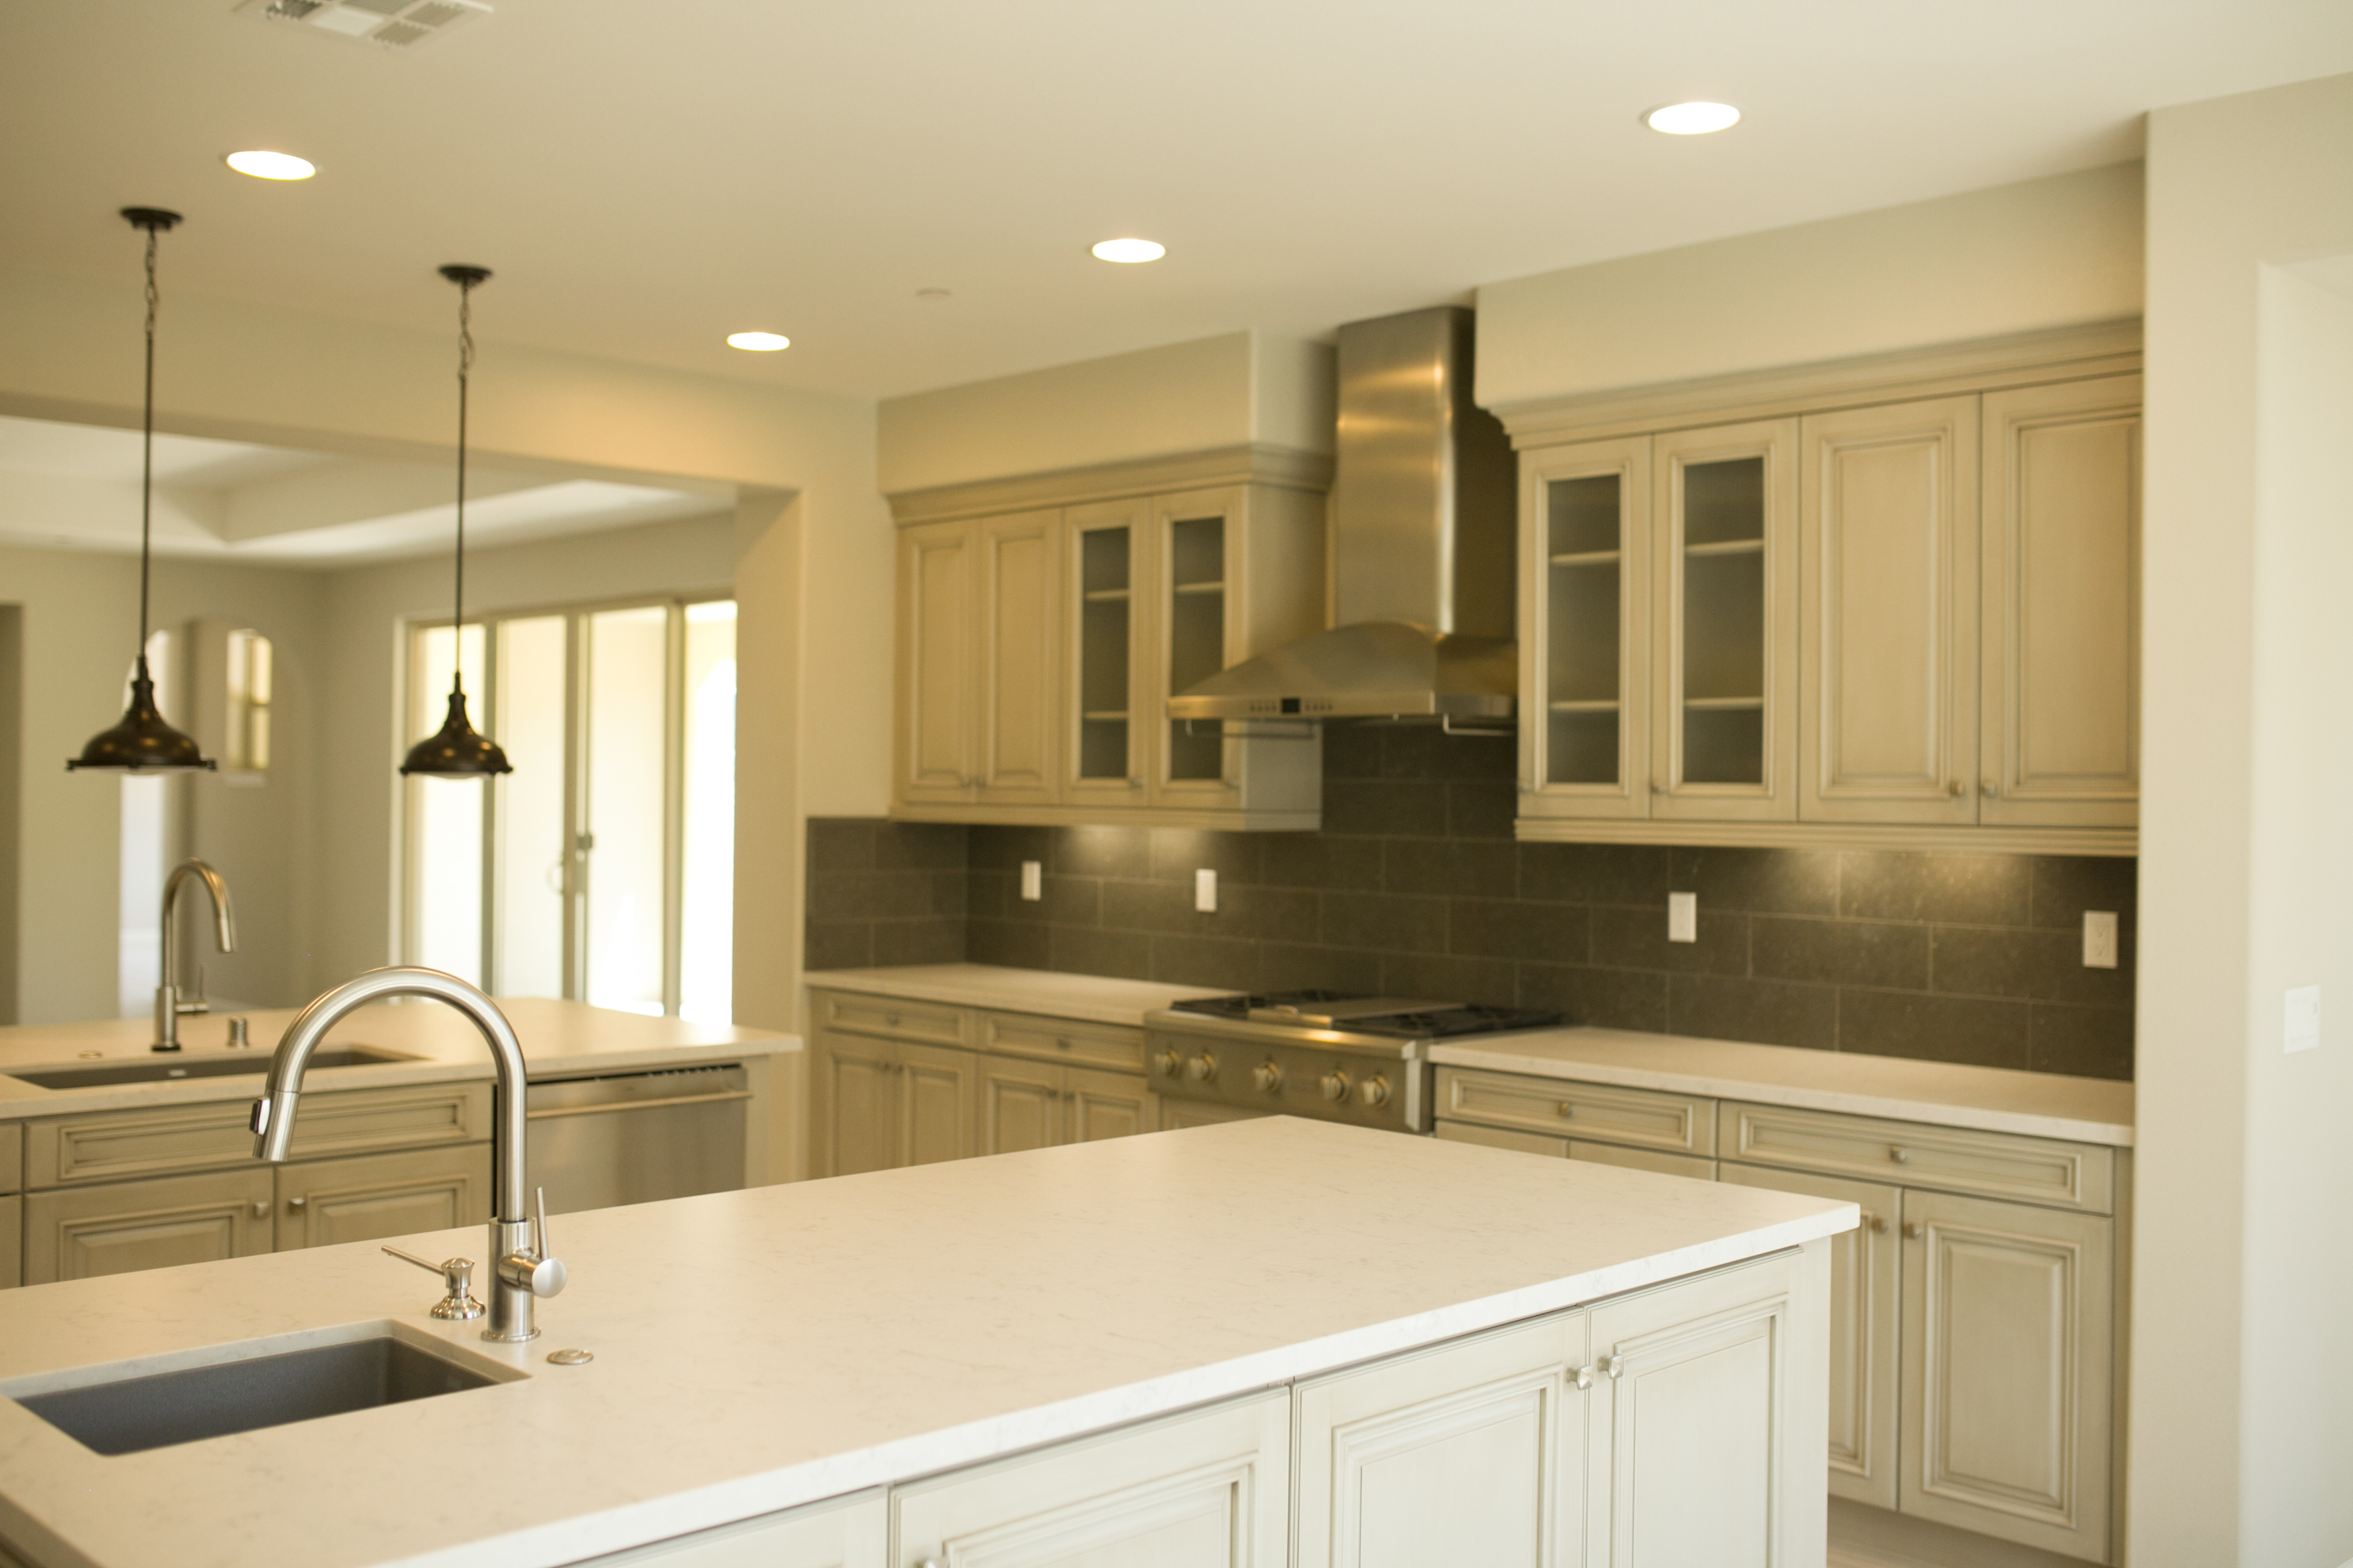 Remodel Your Kitchen Today!